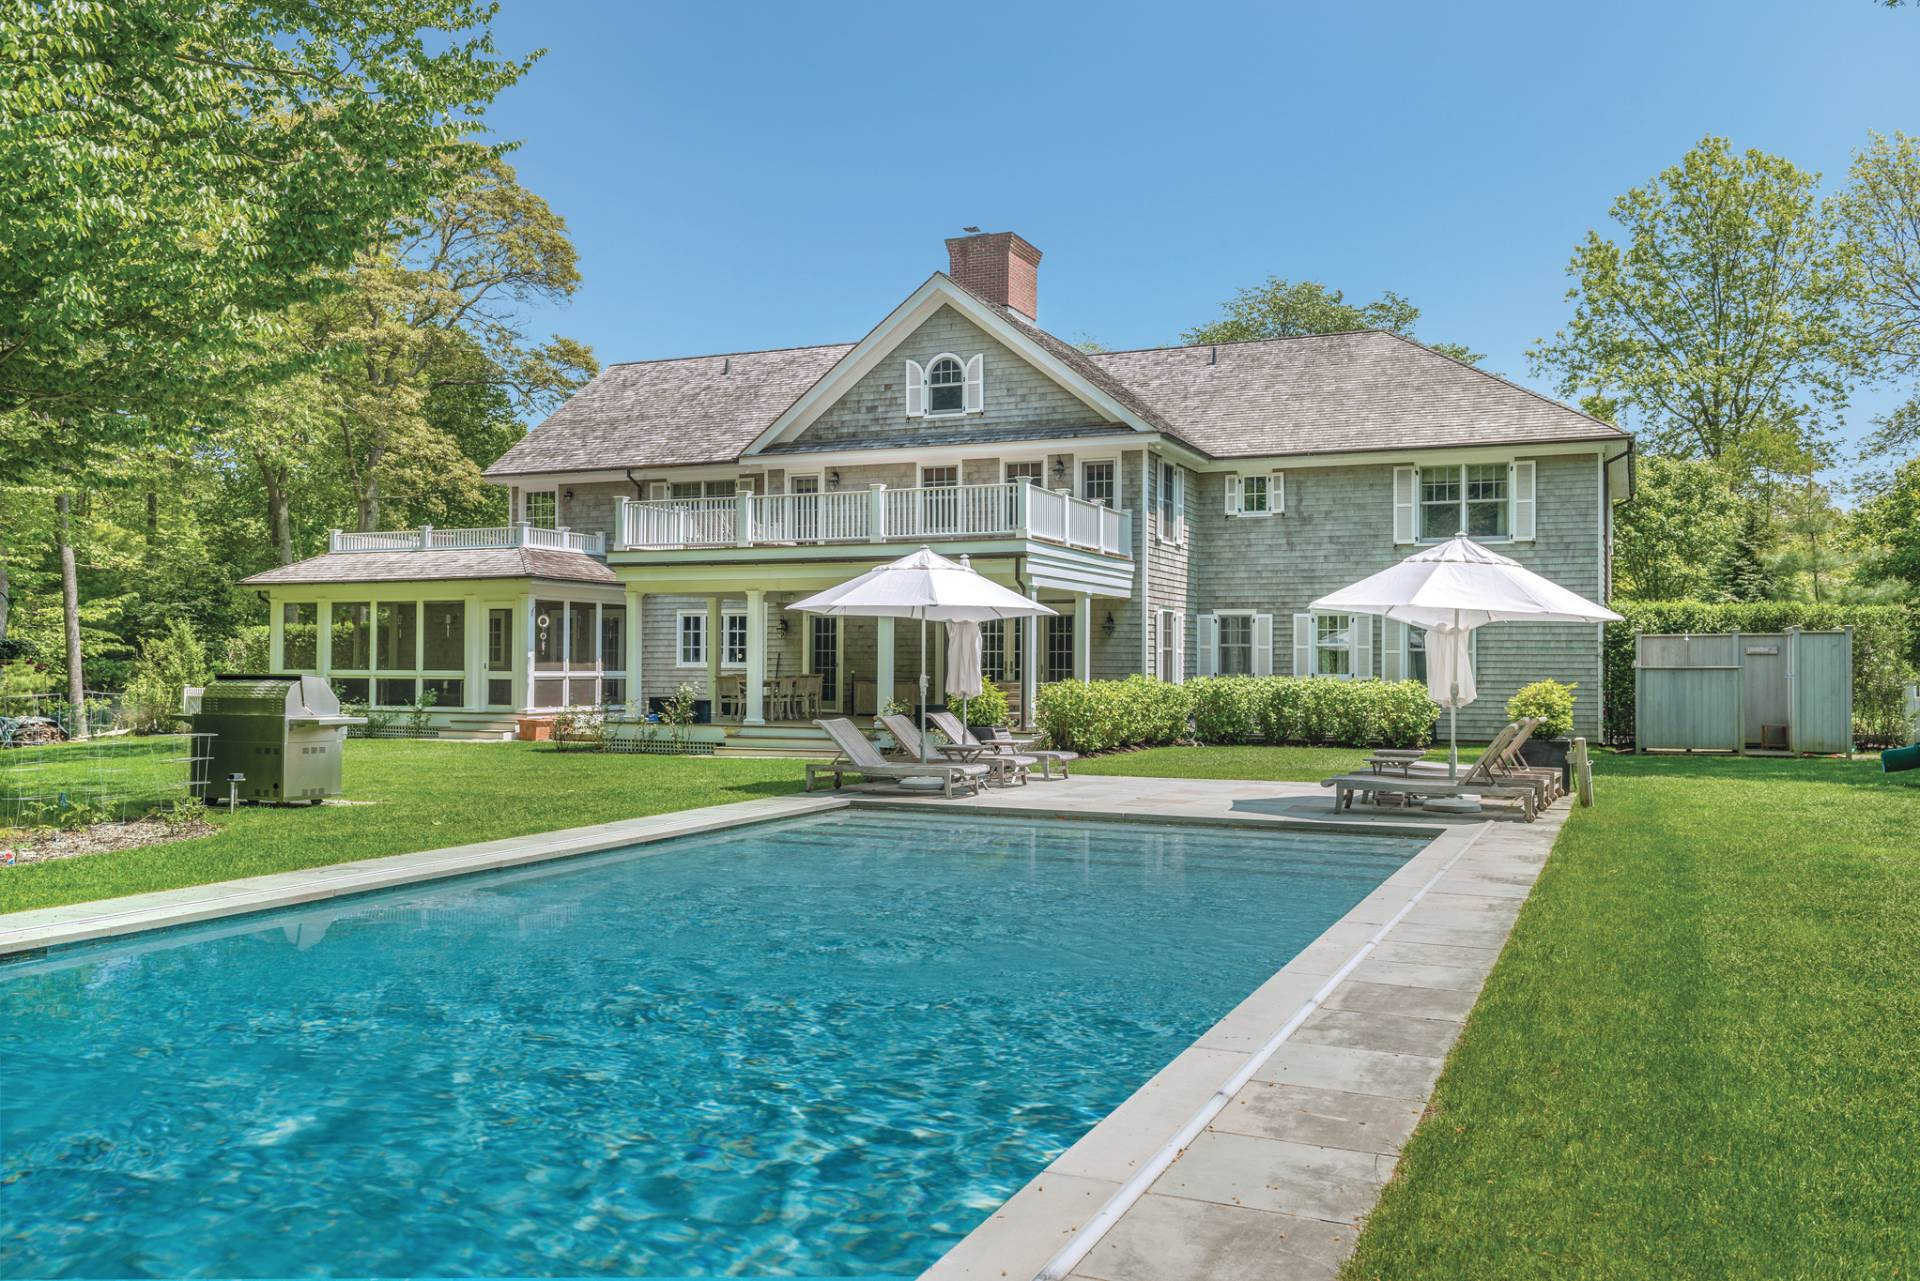 Single Family Home for Sale at Dream House 18 Old Orchard Lane, East Hampton, New York